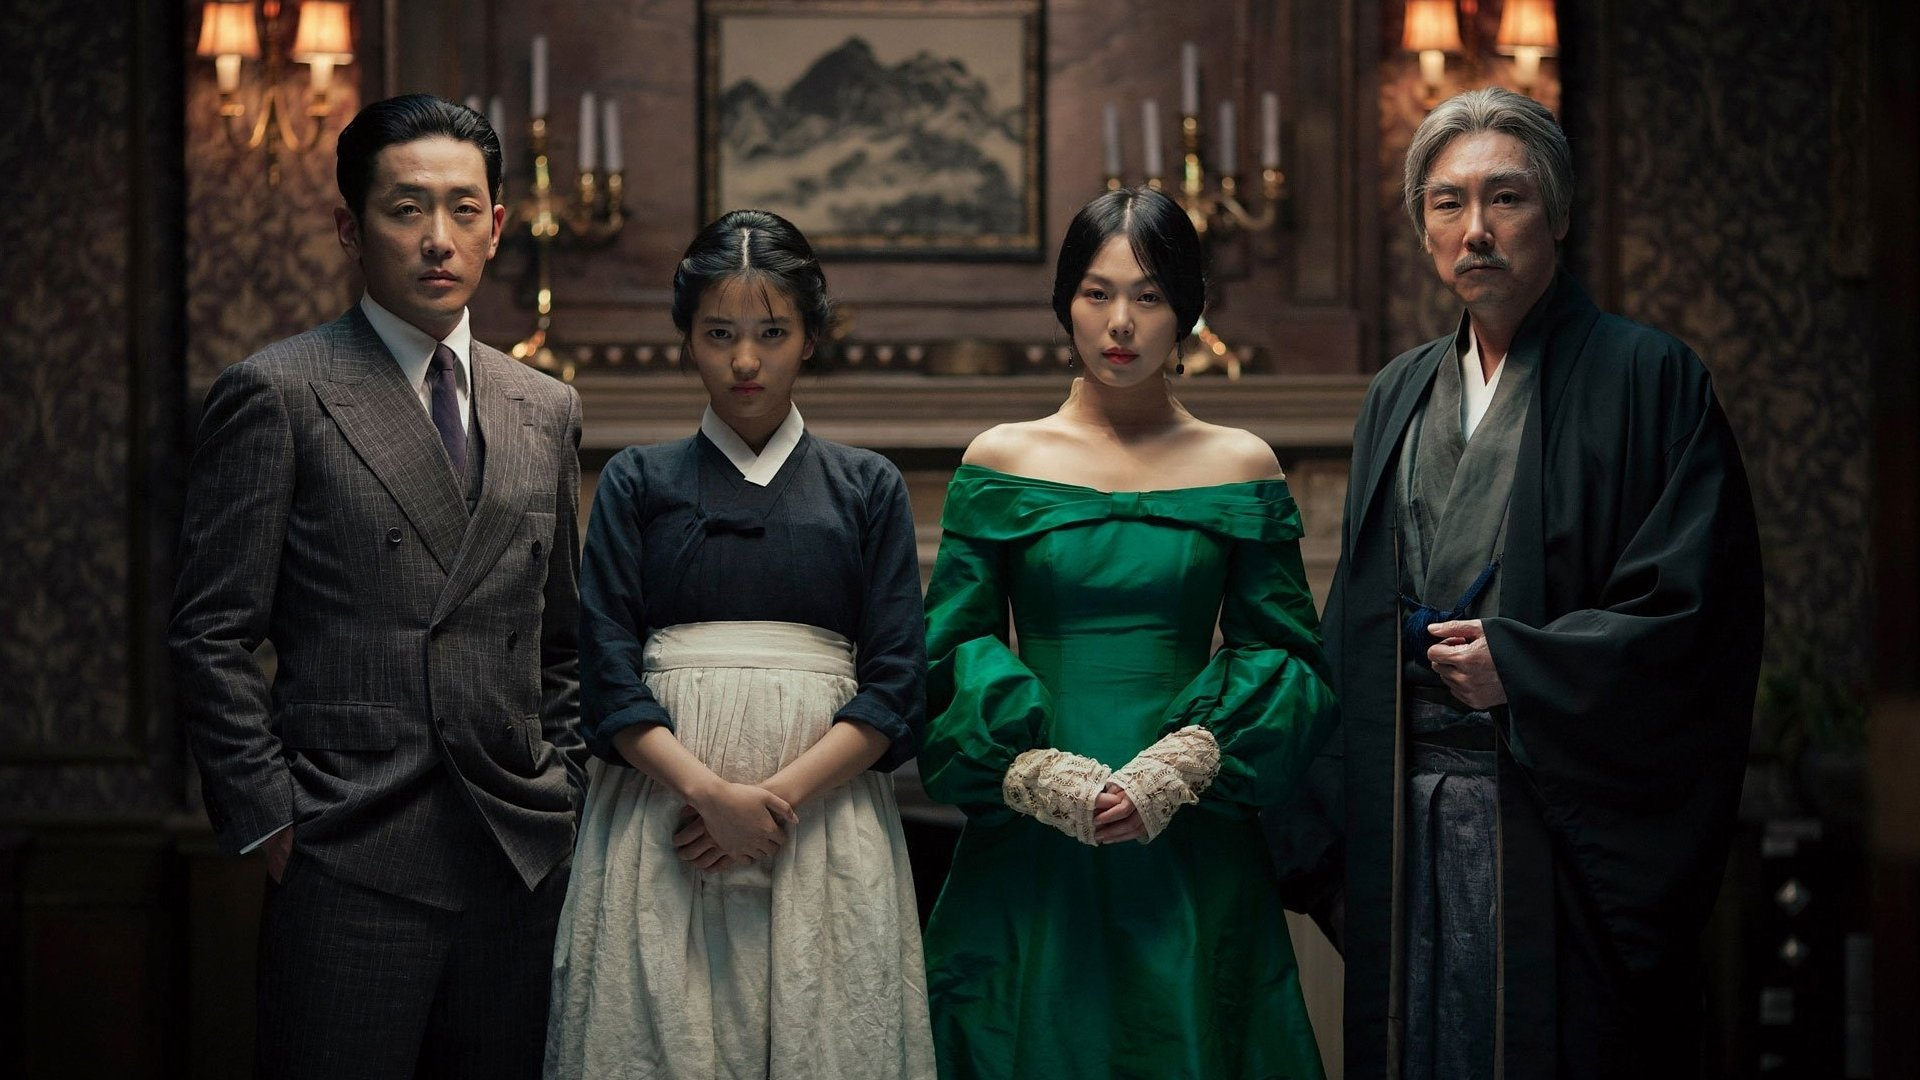 Touching power: The Handmaiden